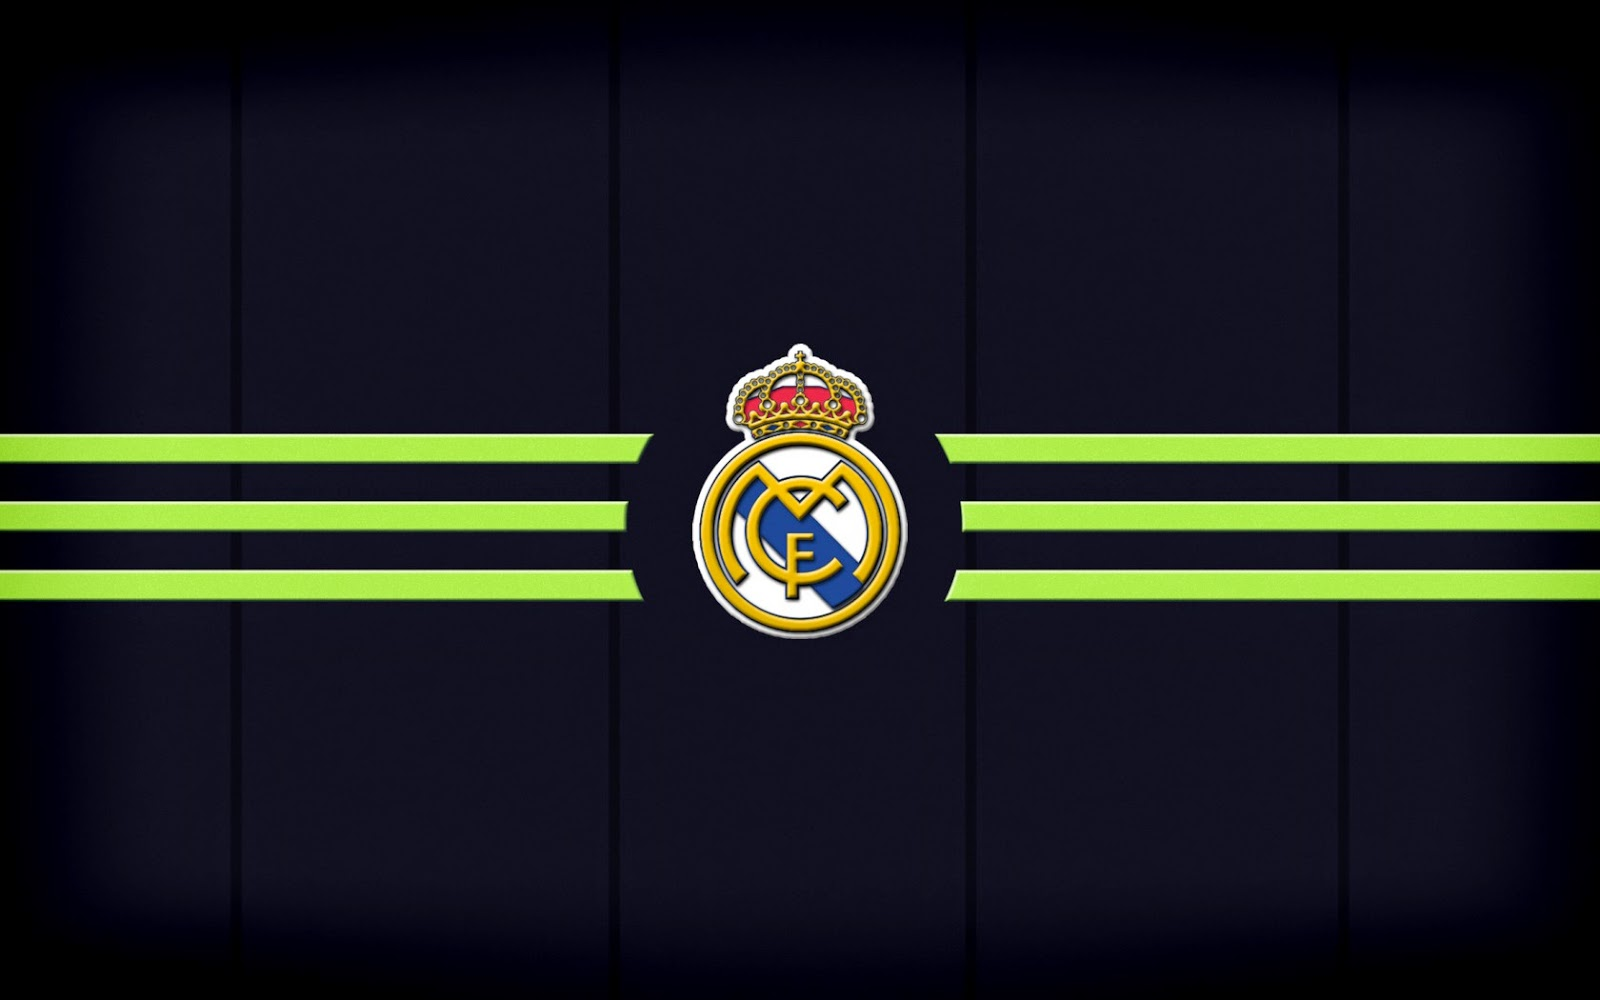 Real Madrid Crest Wallpaper